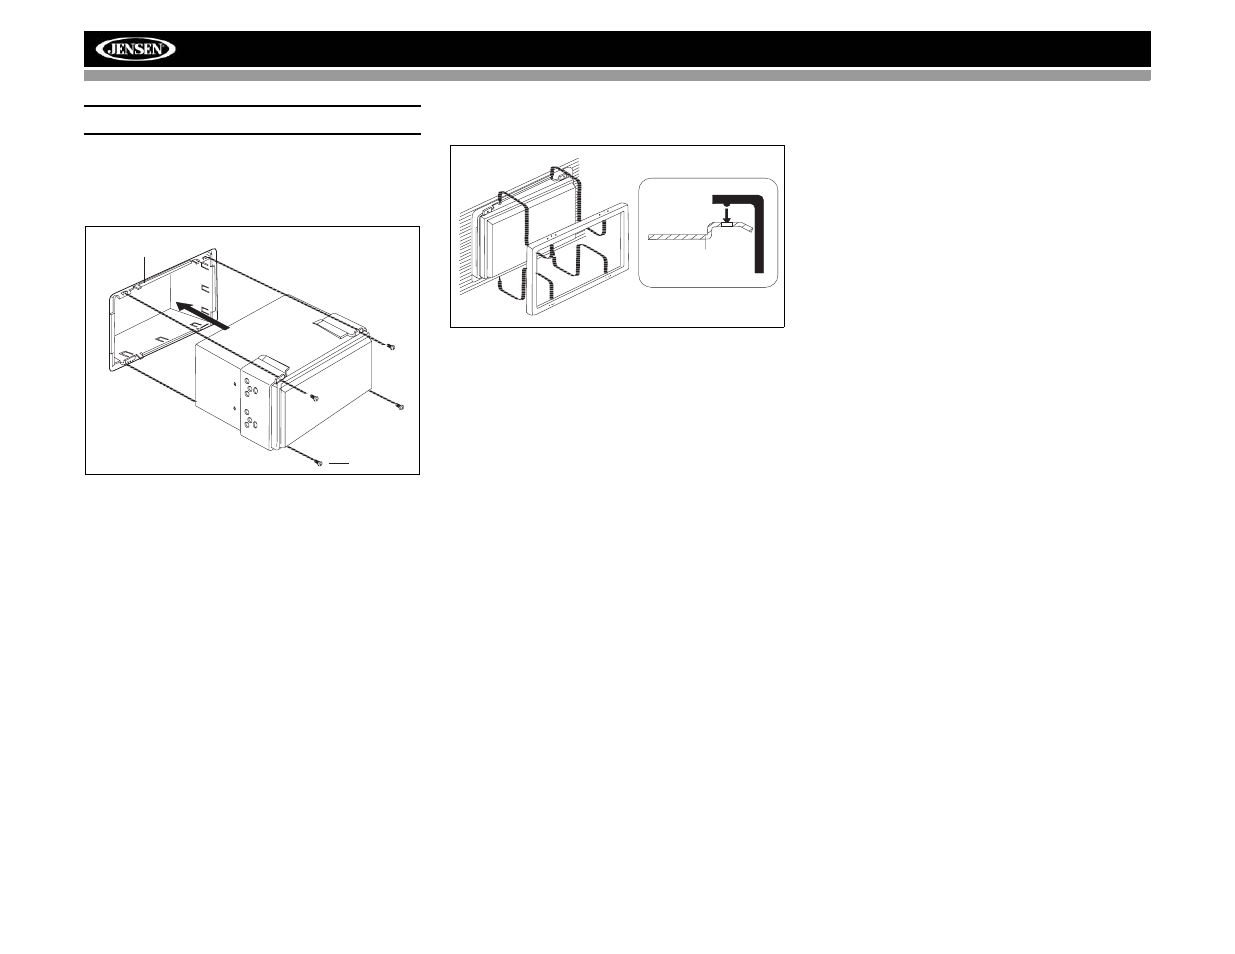 Advent Wiring Diagram Library